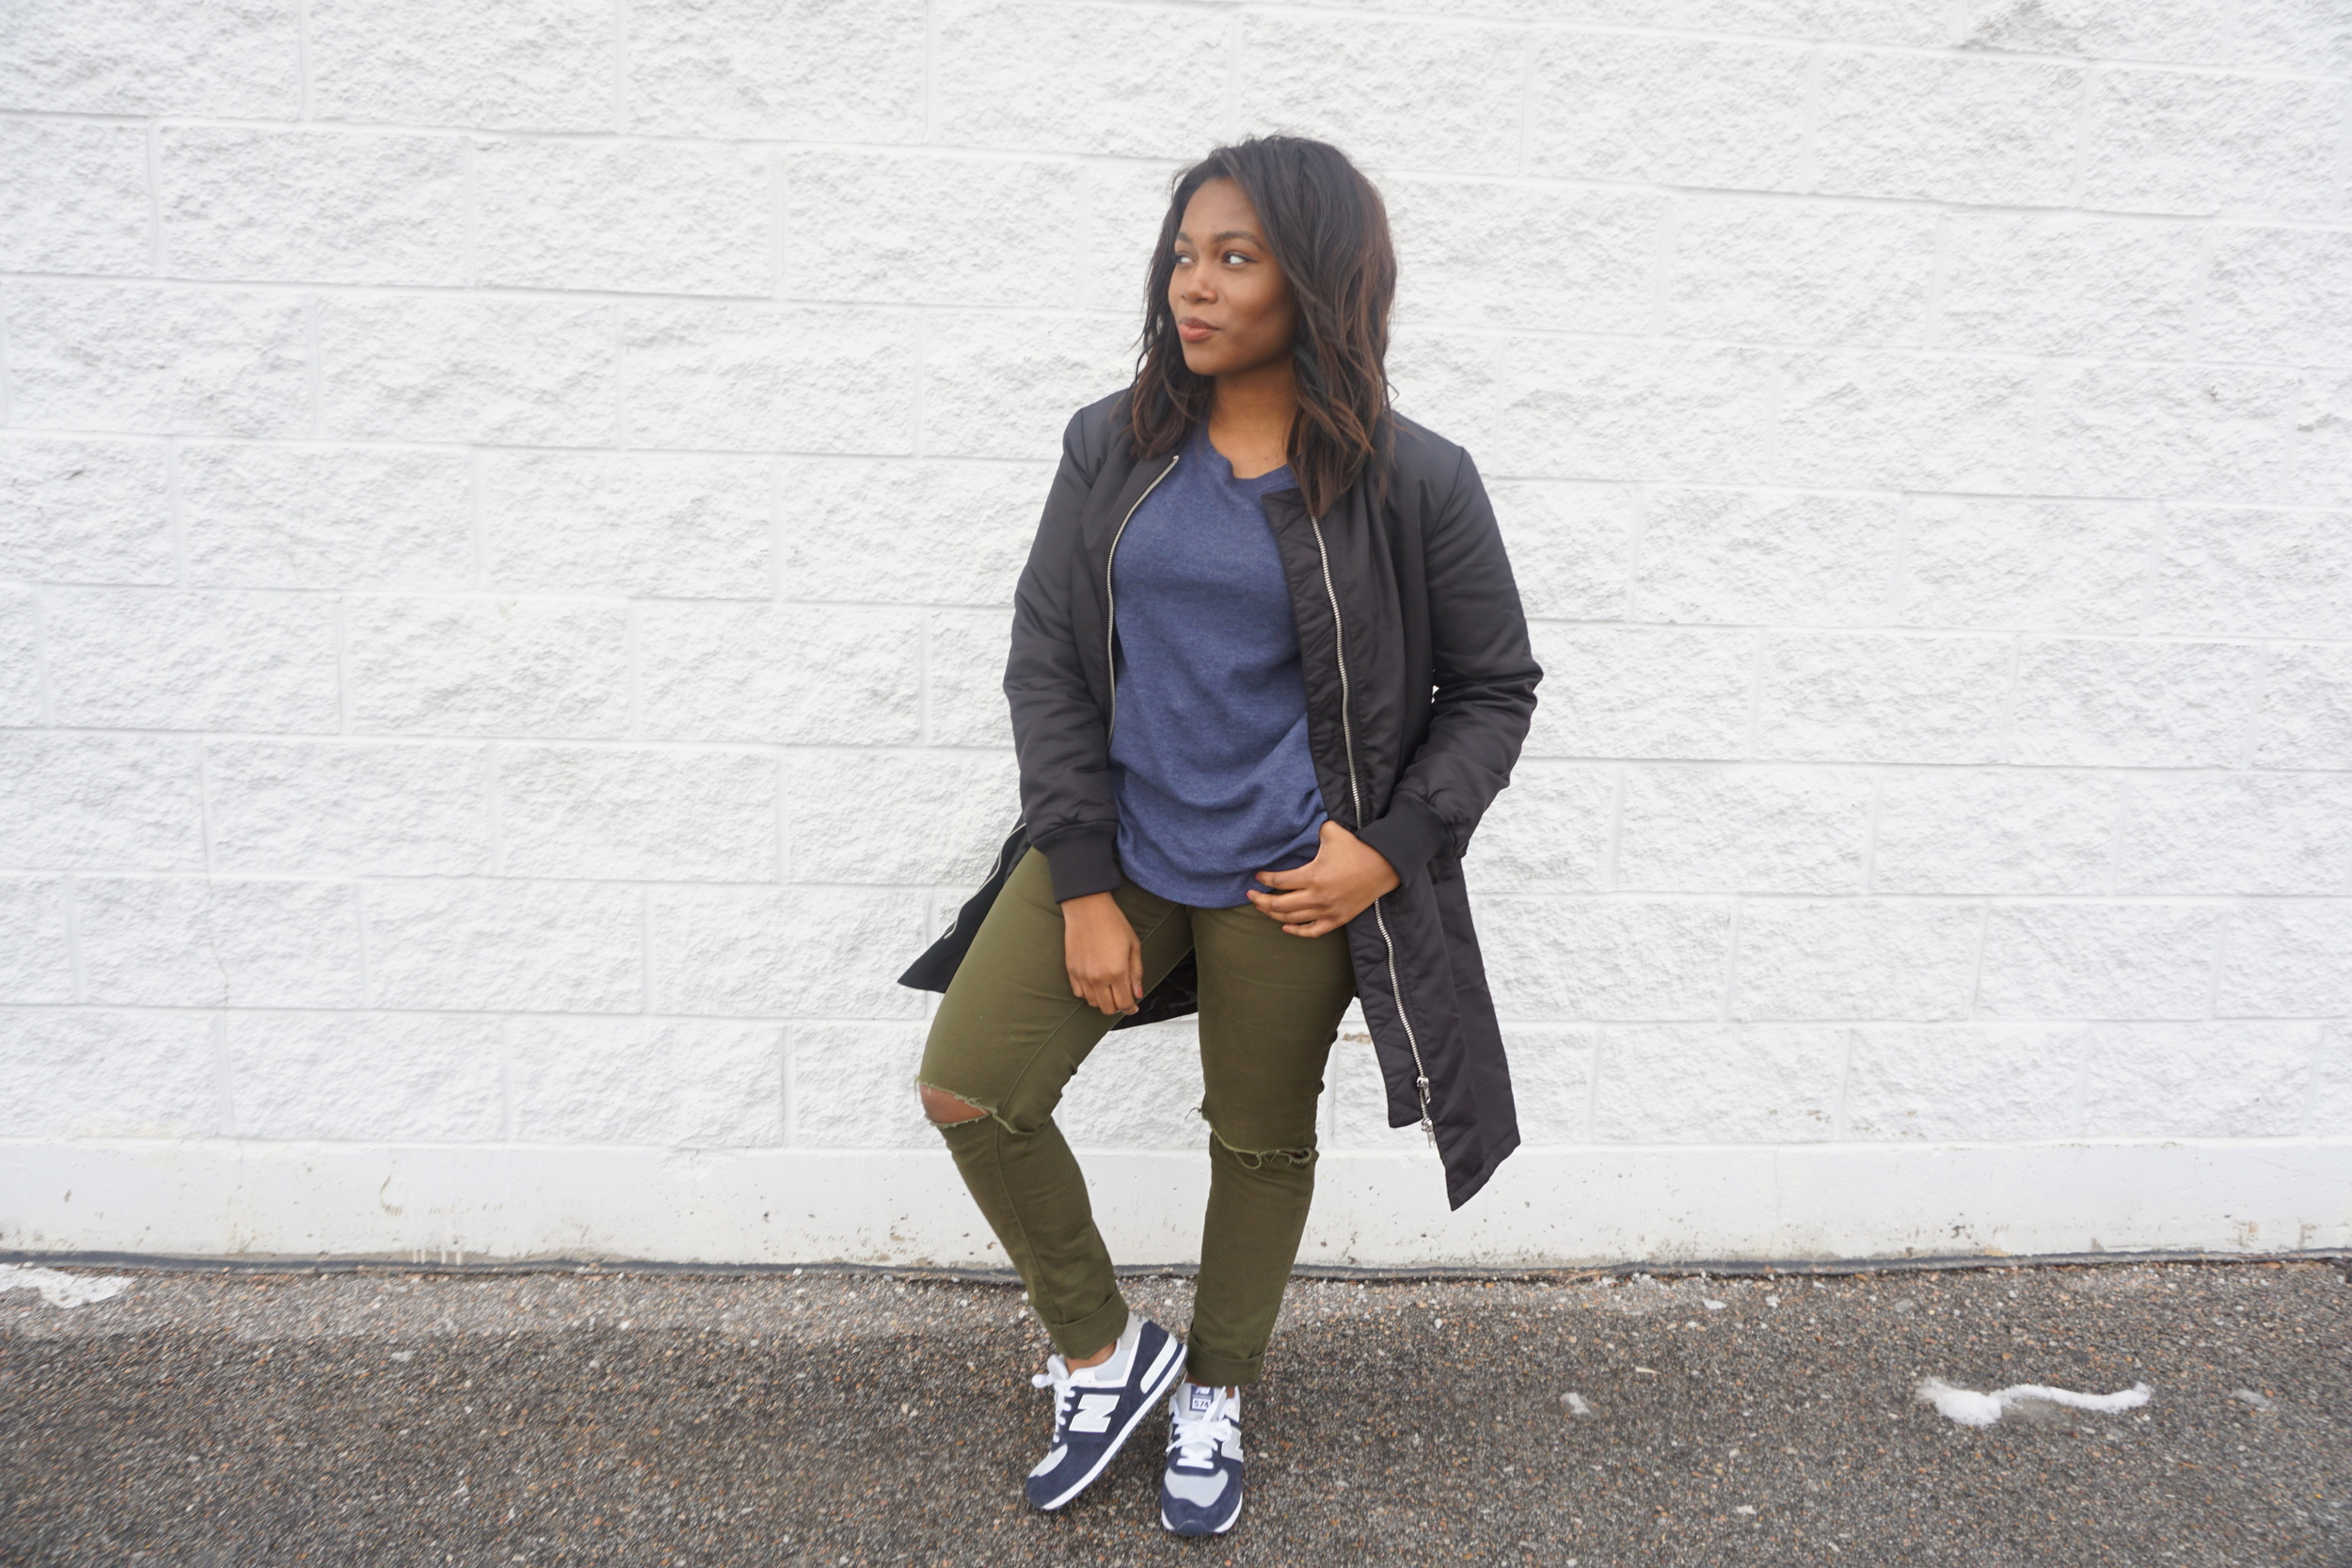 Knee'd Out Olive Jeans - $18.00